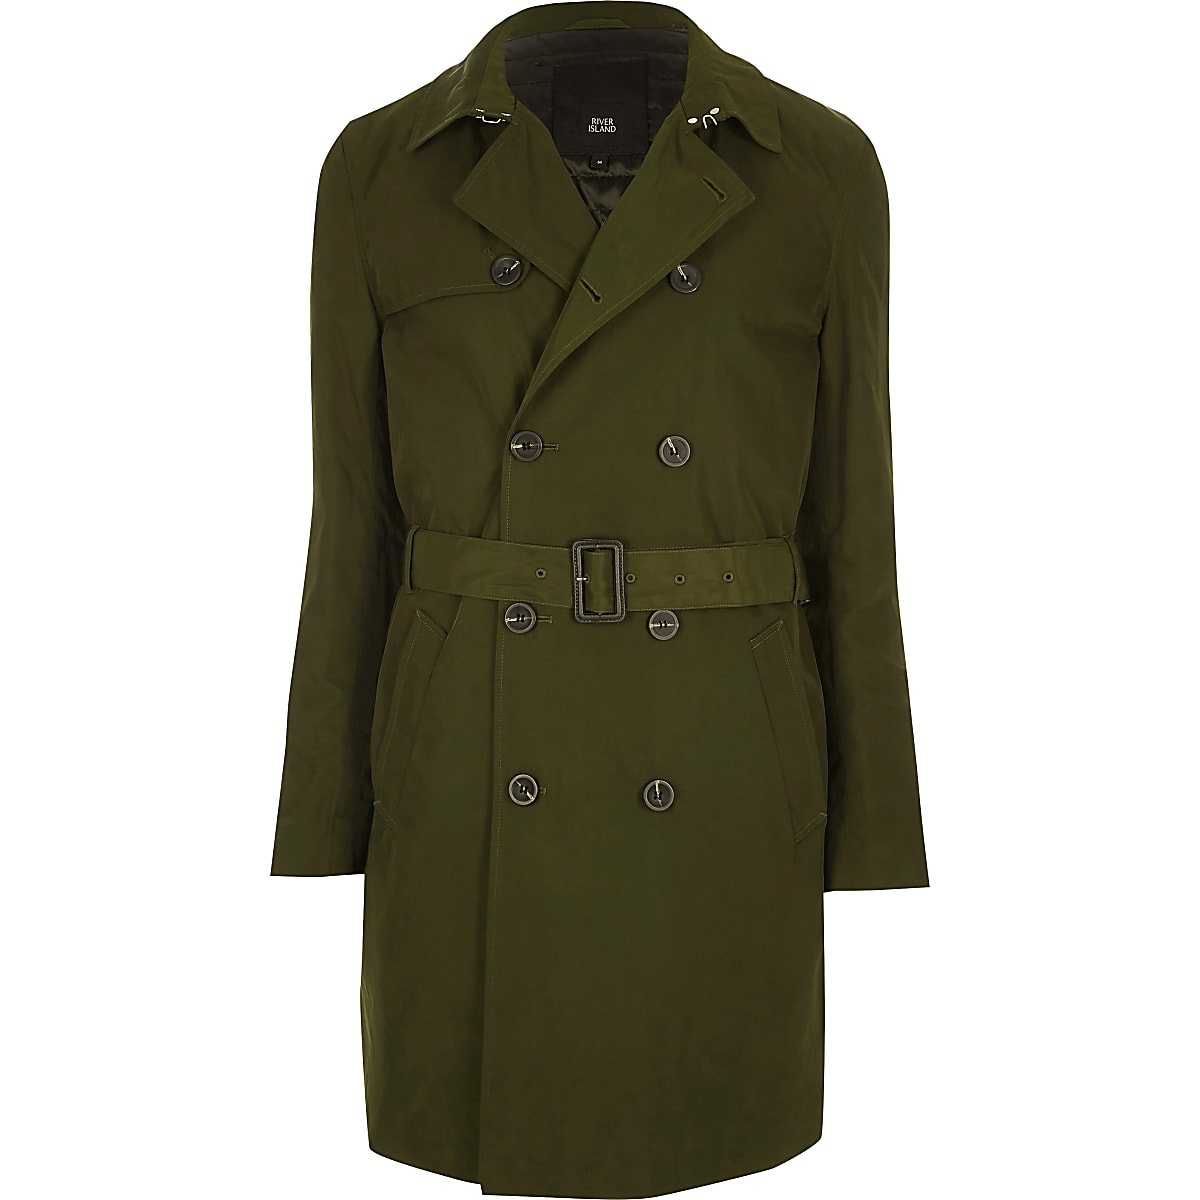 Dark green belted double breasted trench coat